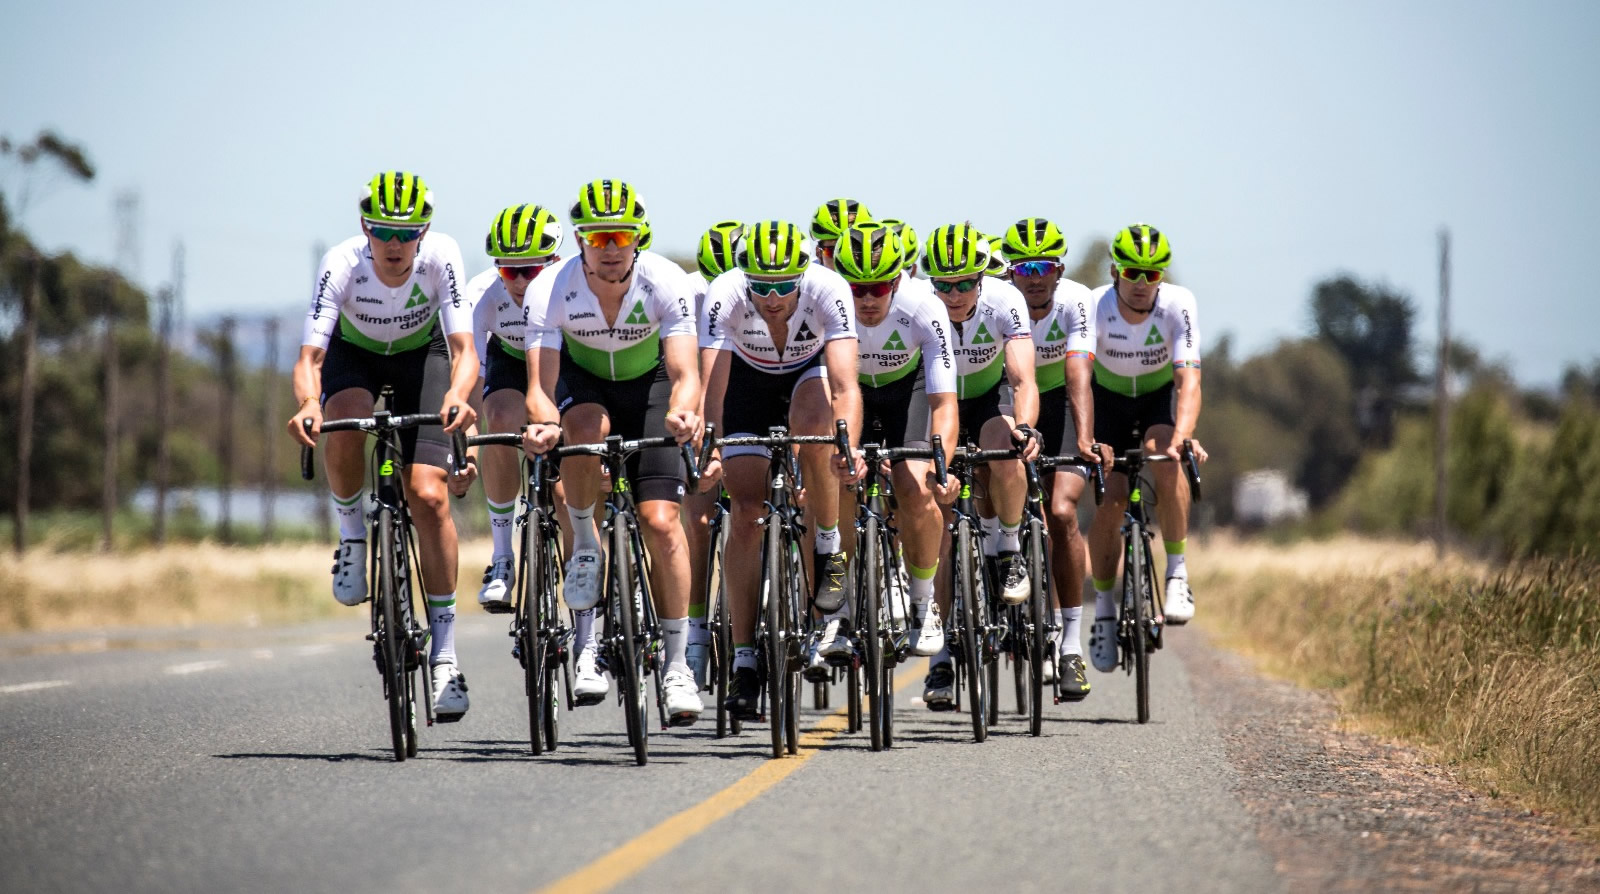 Solrx proud sponsors of team dimension data for quebeka